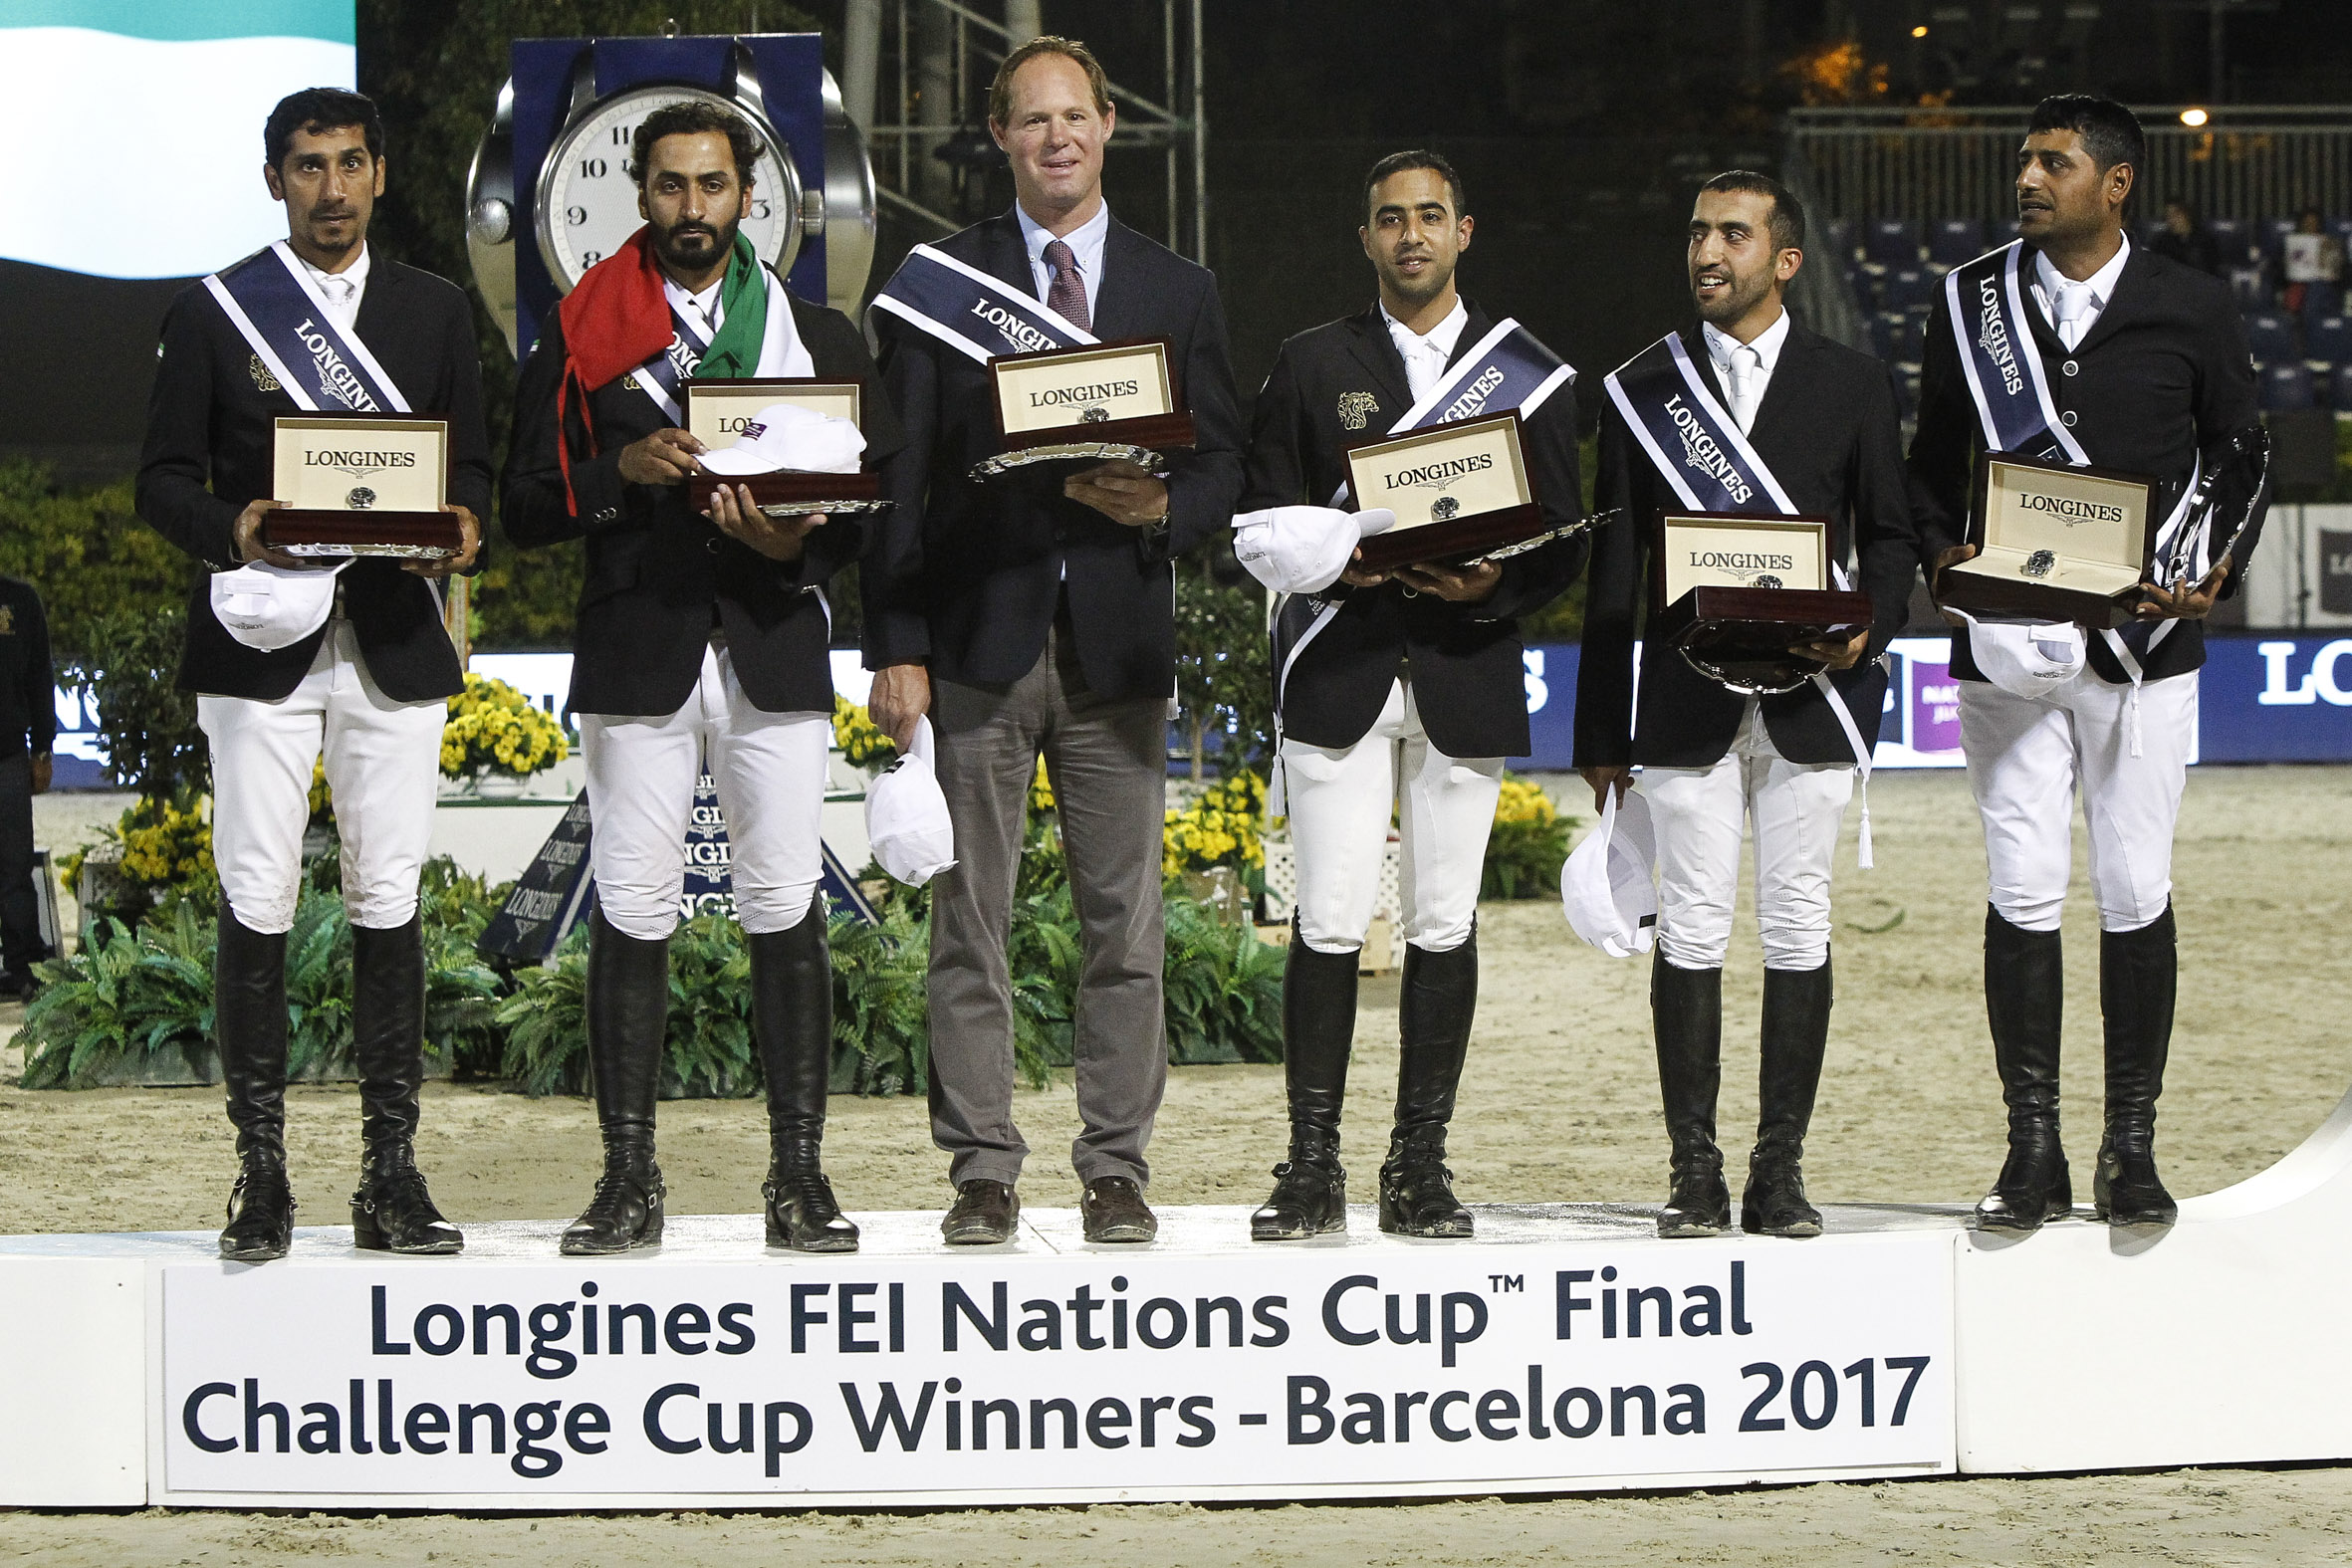 United Arab Emirates achieve the Longines Challenge Cup